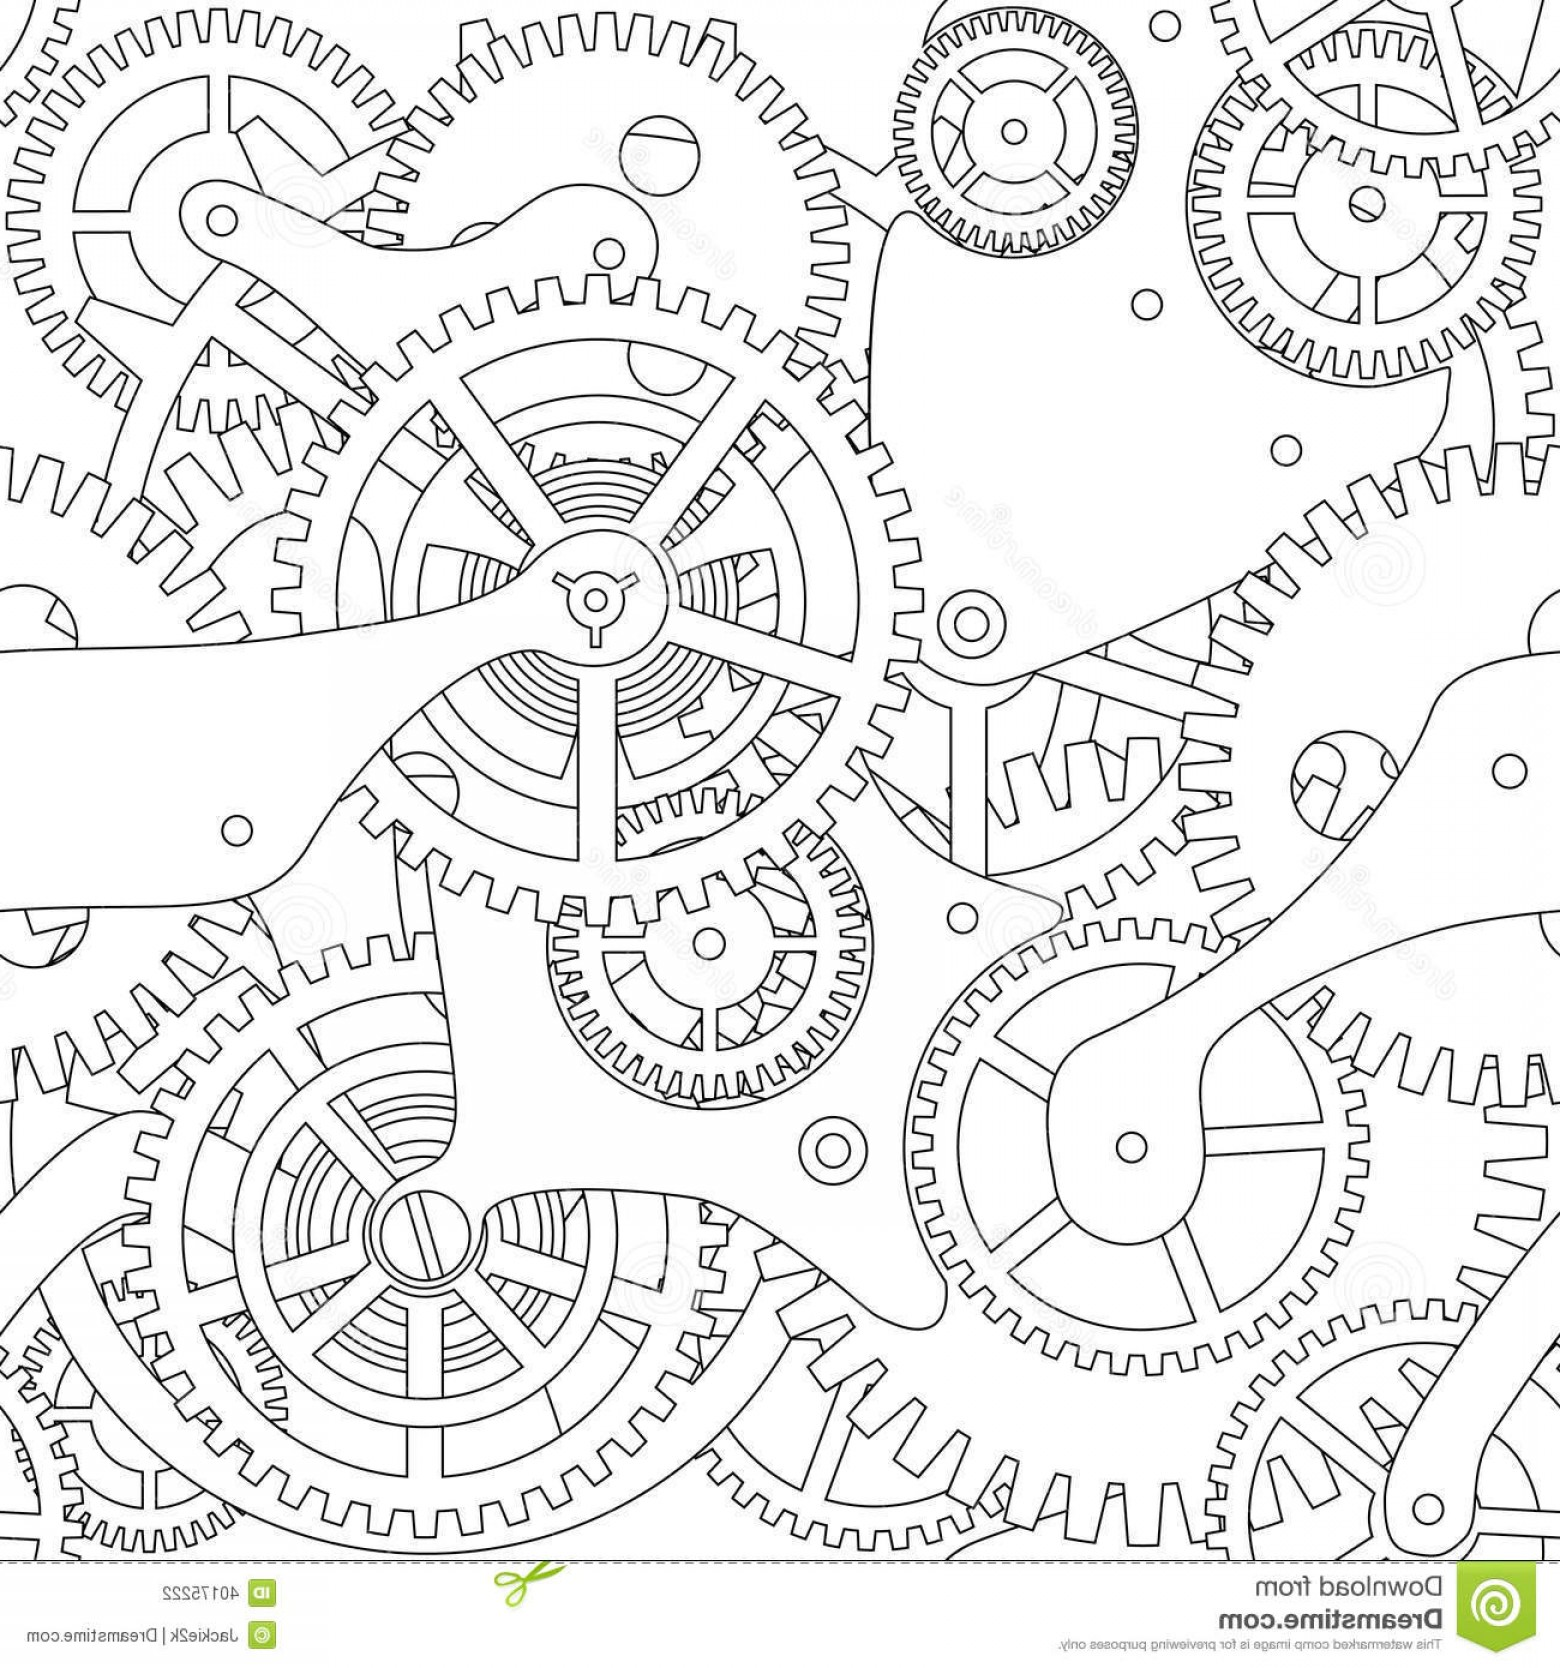 Watch Gears Vector: Stock Photography Gear Seamless Texture Cogwheel Black White Image